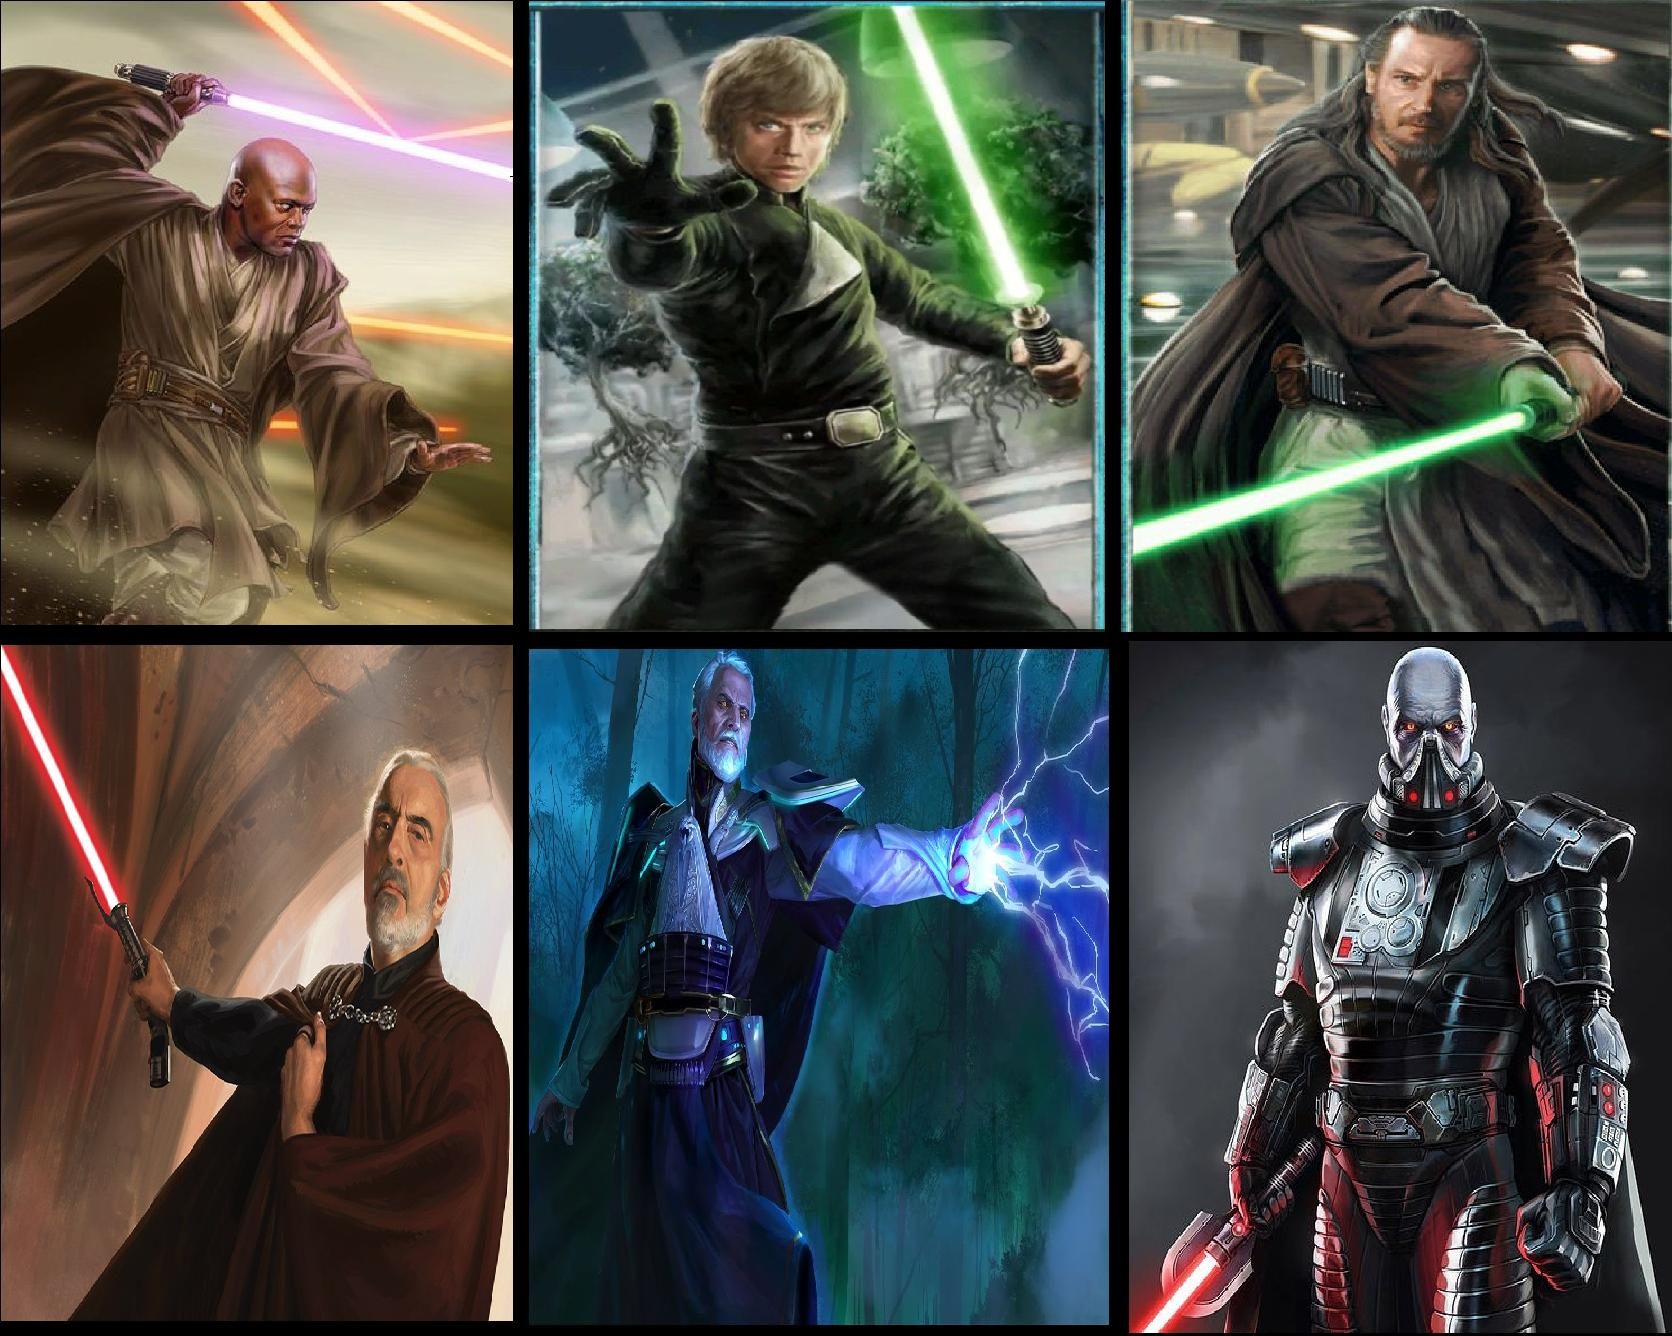 Who are your top 3 favourite Jedi and Sith? Here are mine!